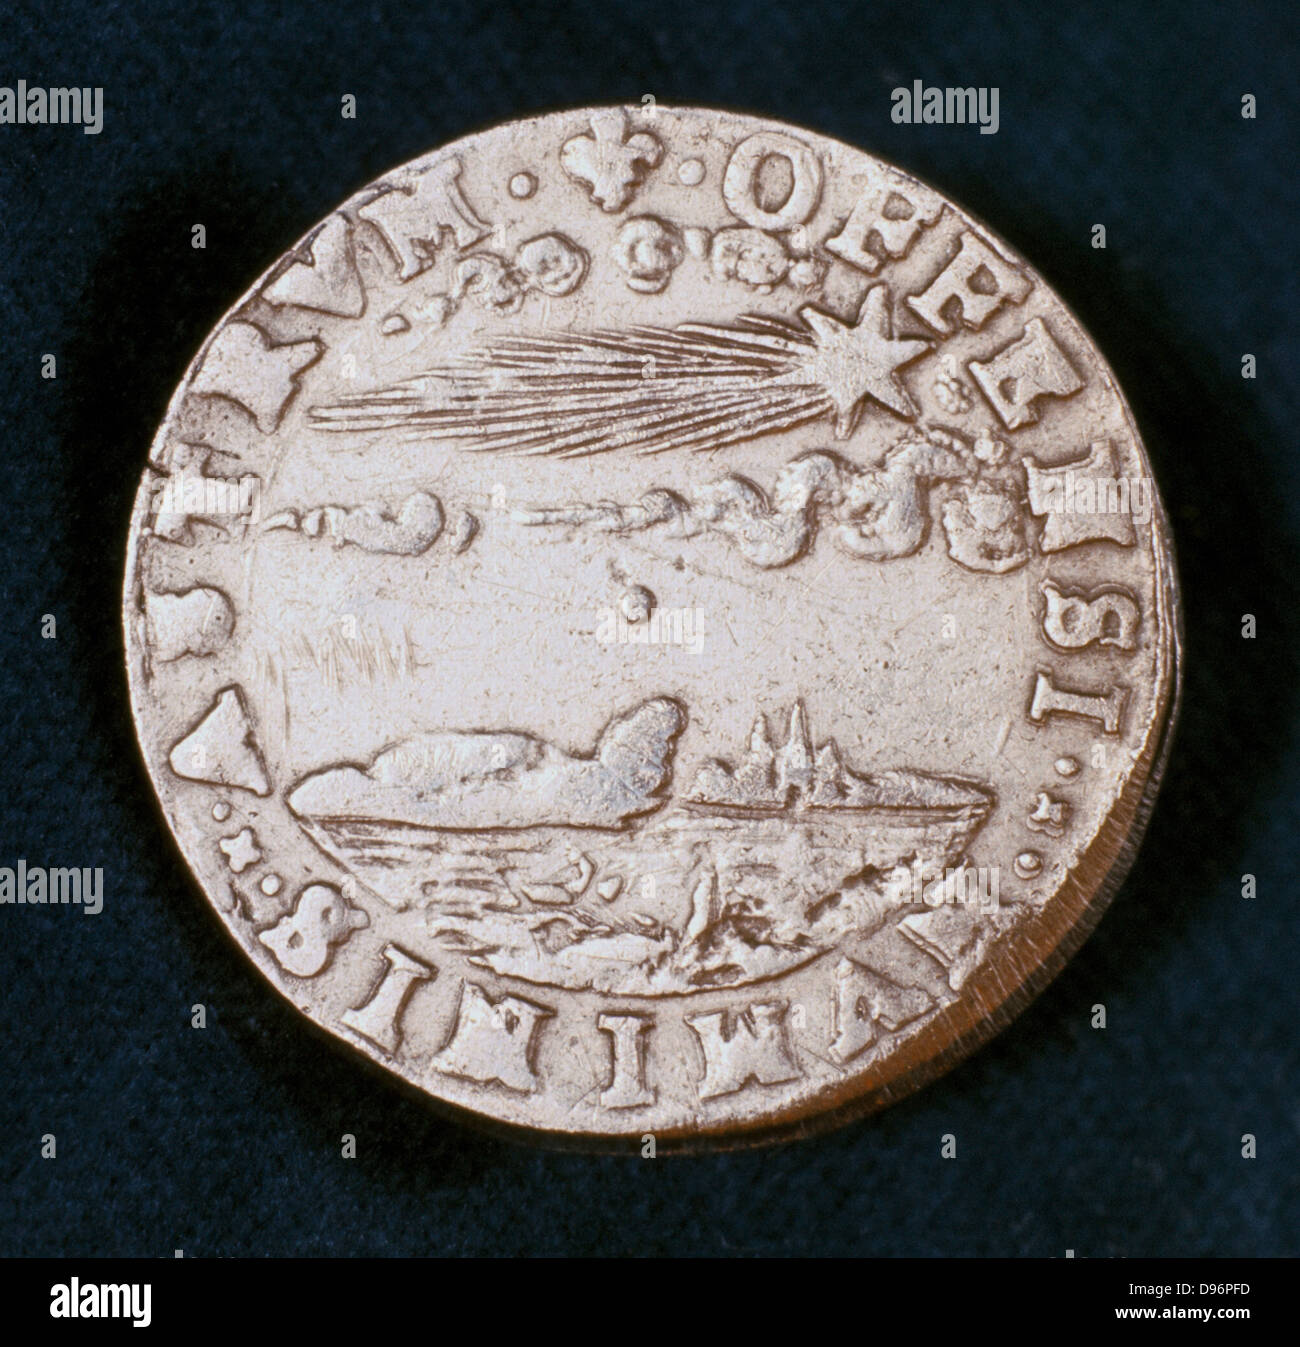 Obverse of medal commemorating the bright comet of 1577. Known as Brahe's comet, this is the comet which convinced - Stock Image